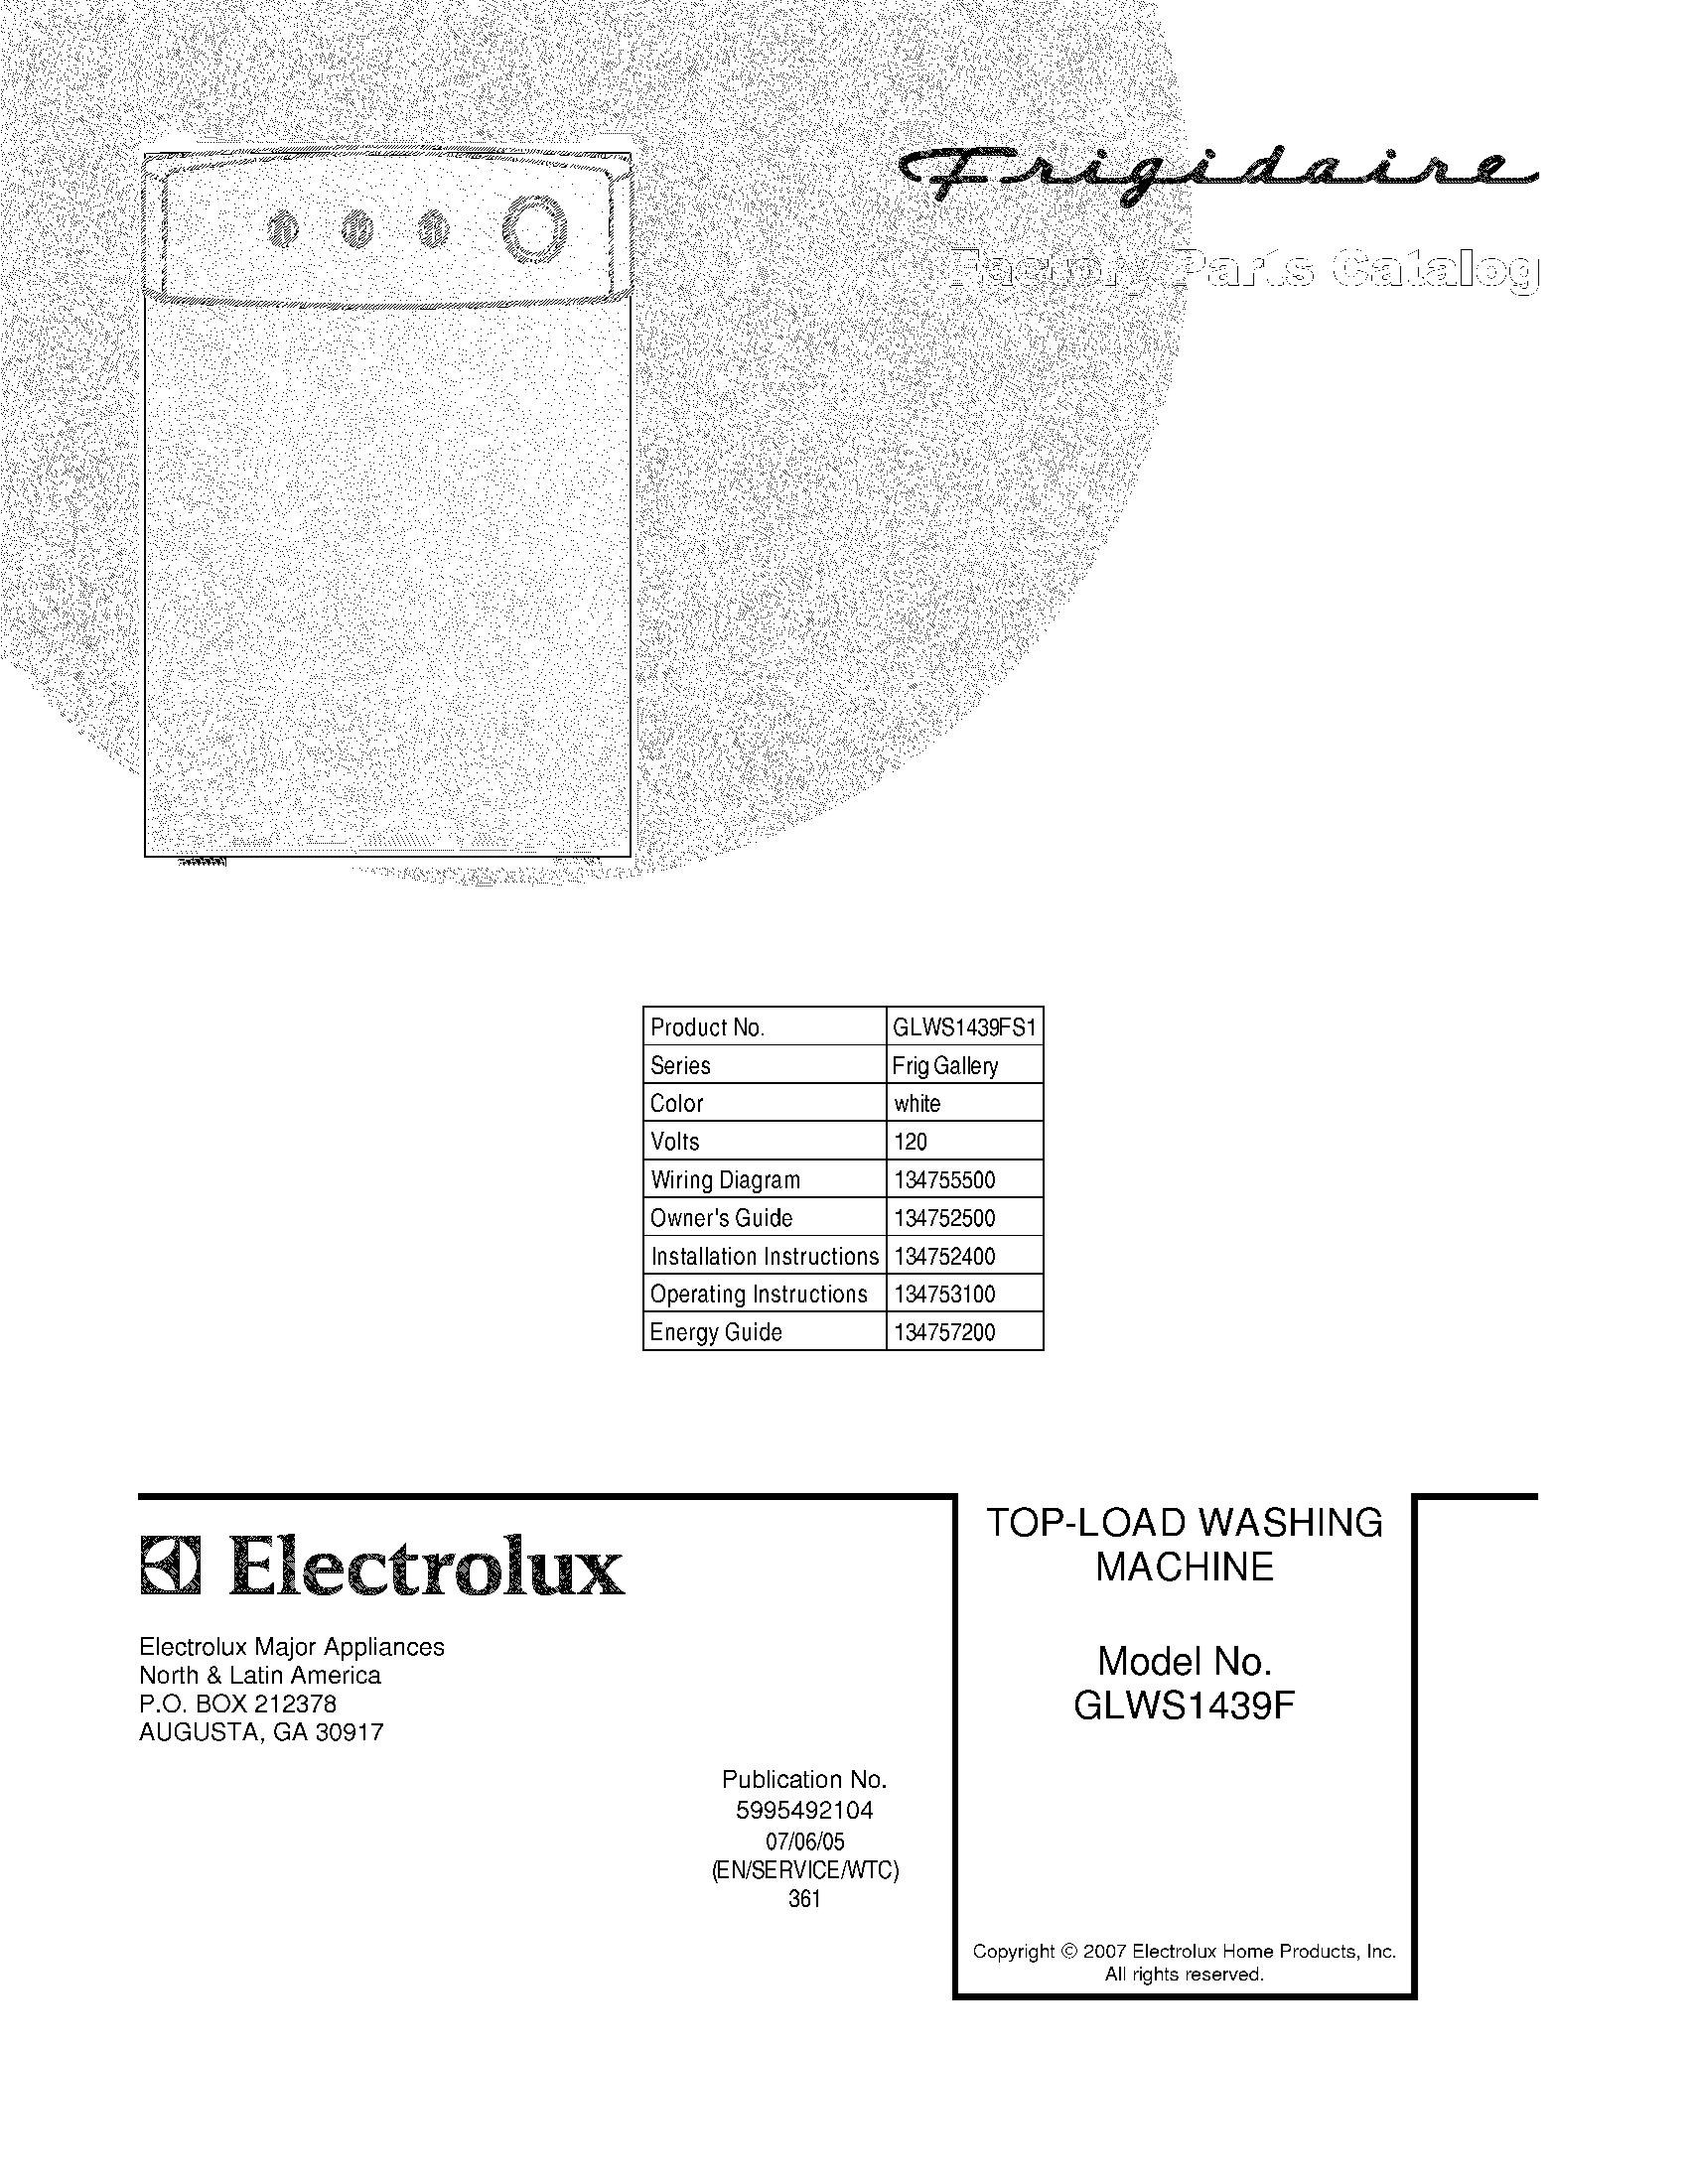 GLWS1439FS1 Washing Machine Gallery Series Electrolux